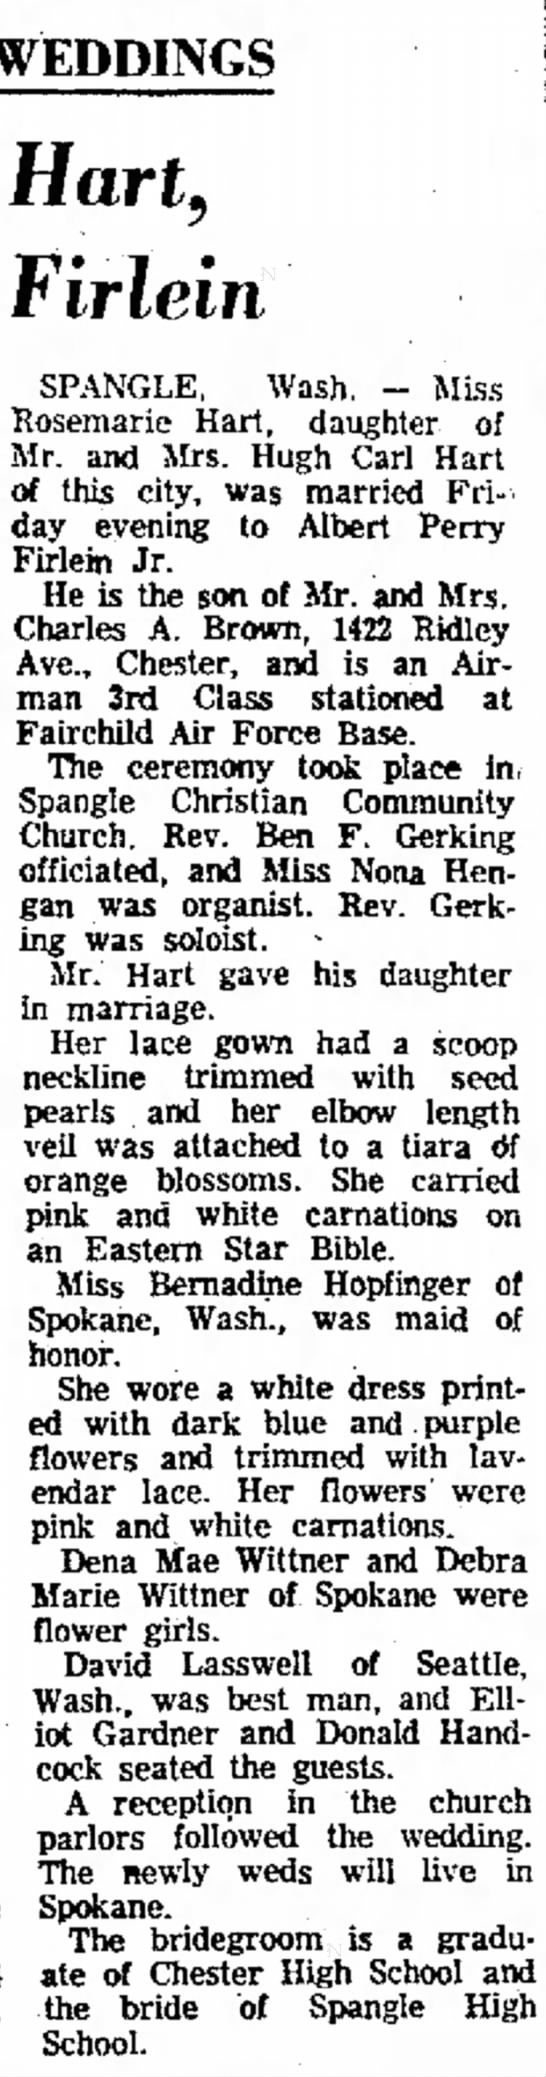 Delaware County Daily Times Chester, PennsylvaniaSaturday, February 25, 1961 -